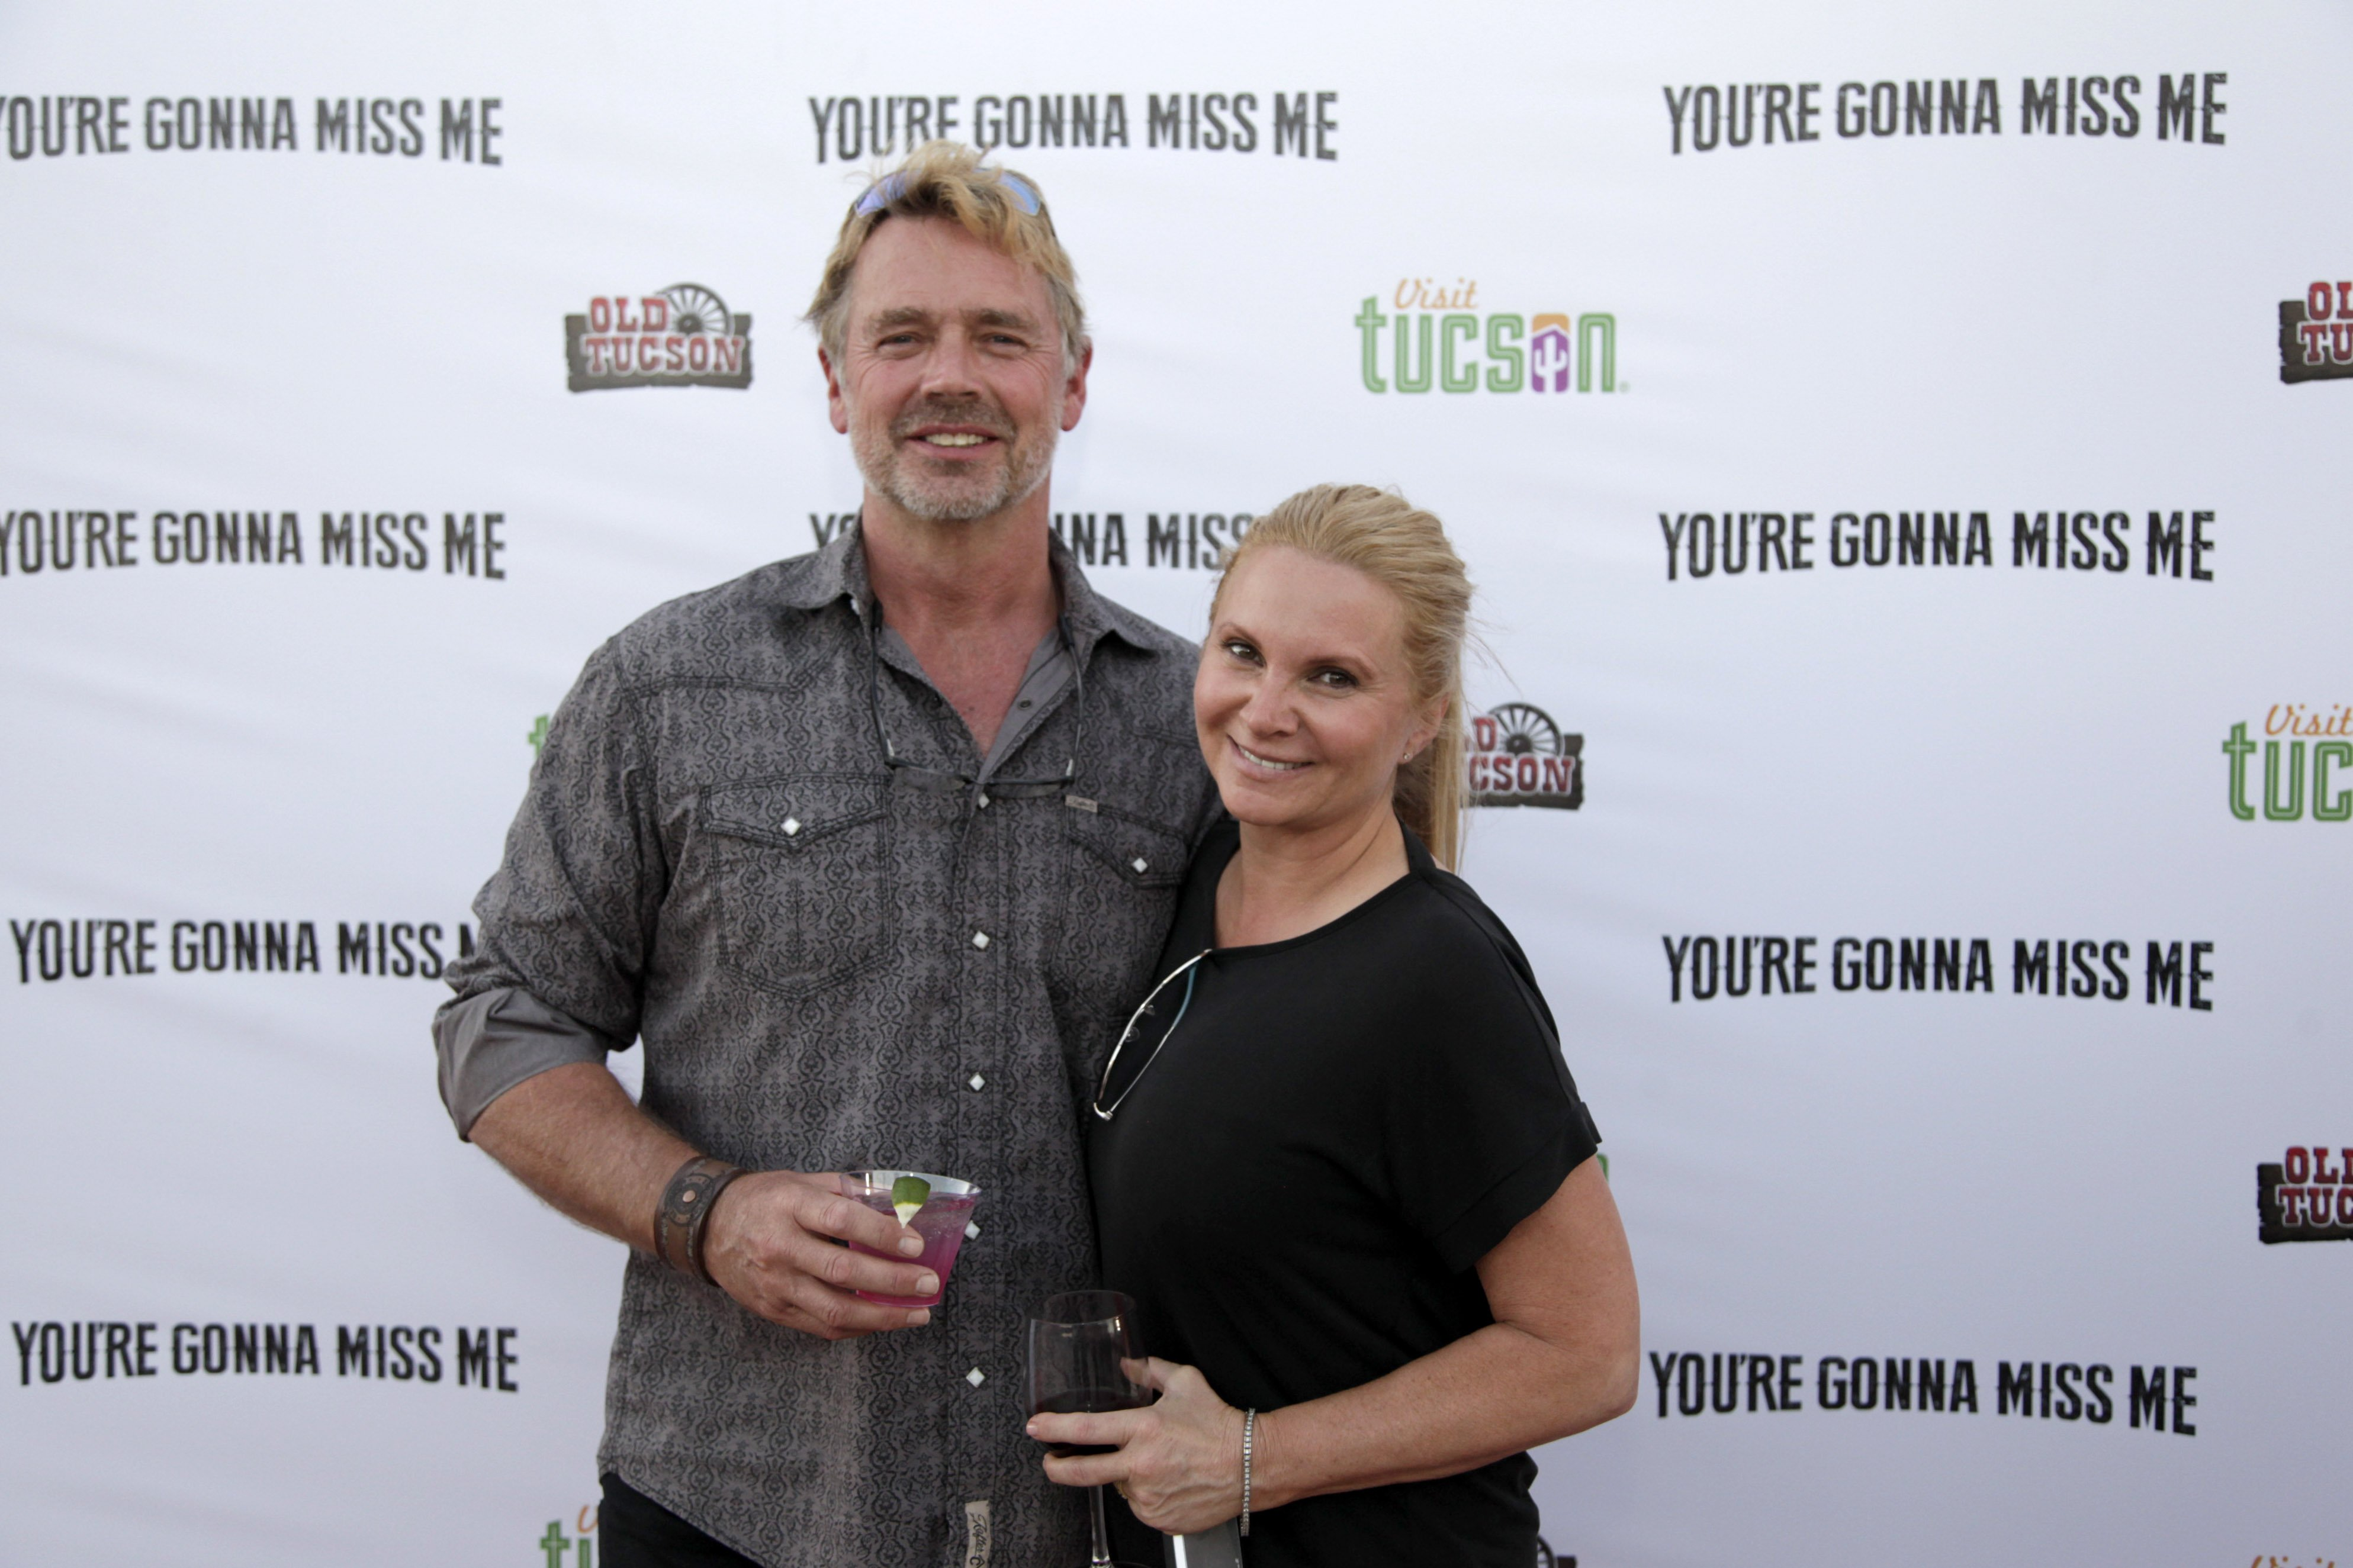 """John Schneider and Alicia Allain attend """"You're Gonna Miss Me"""" premiere sponsored by Visit Tucson on May 13, 2017 